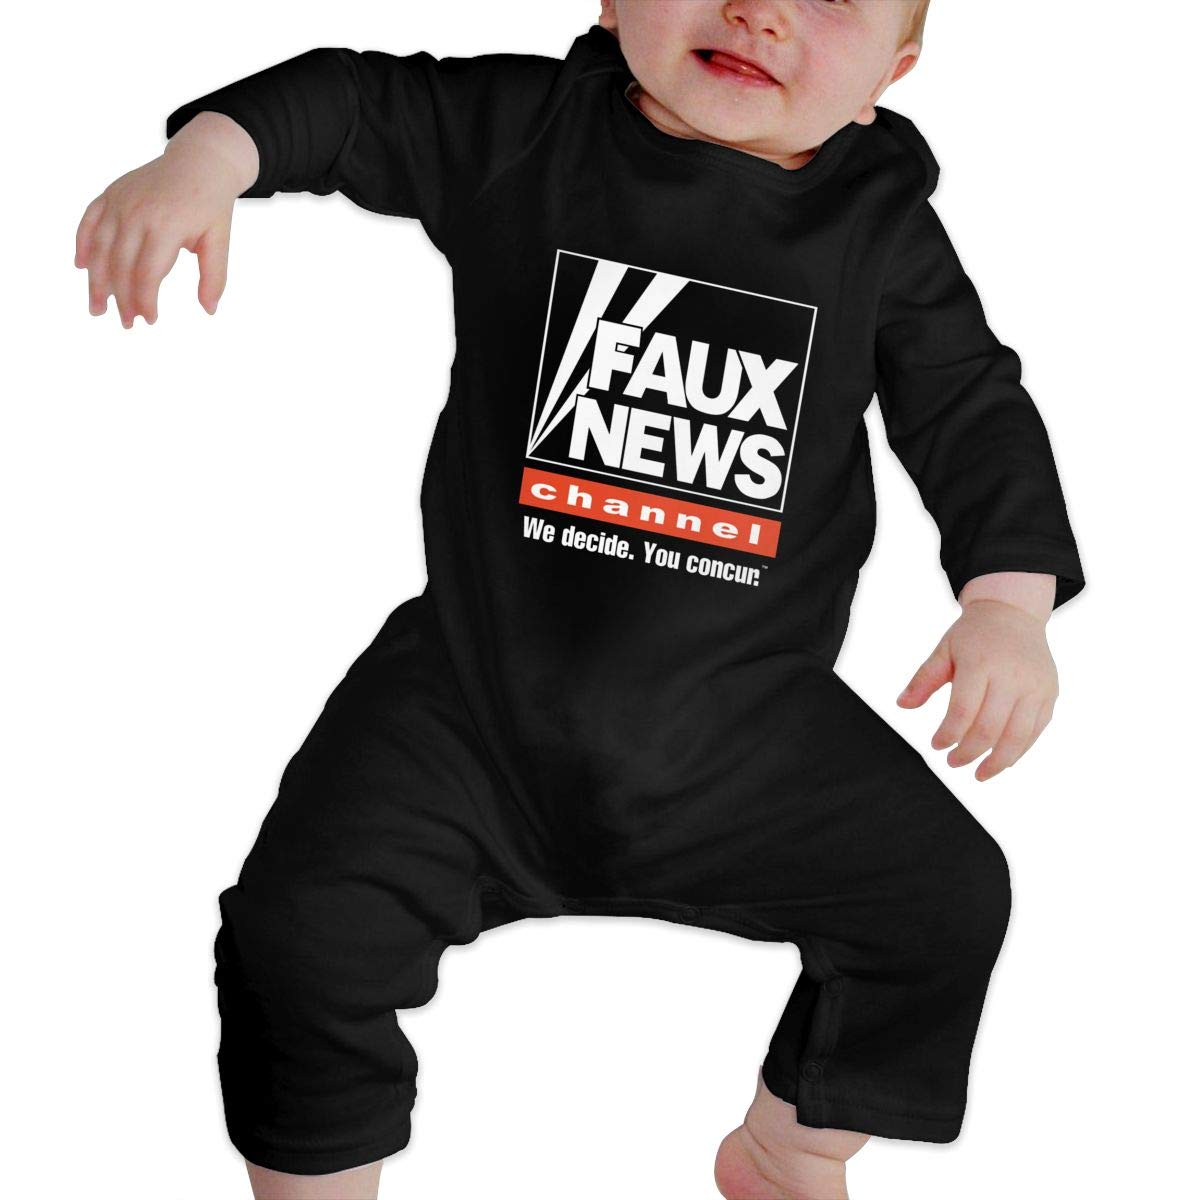 Gsaa Faux News Baby Long Sleeve Bodysuit Cotton Romper